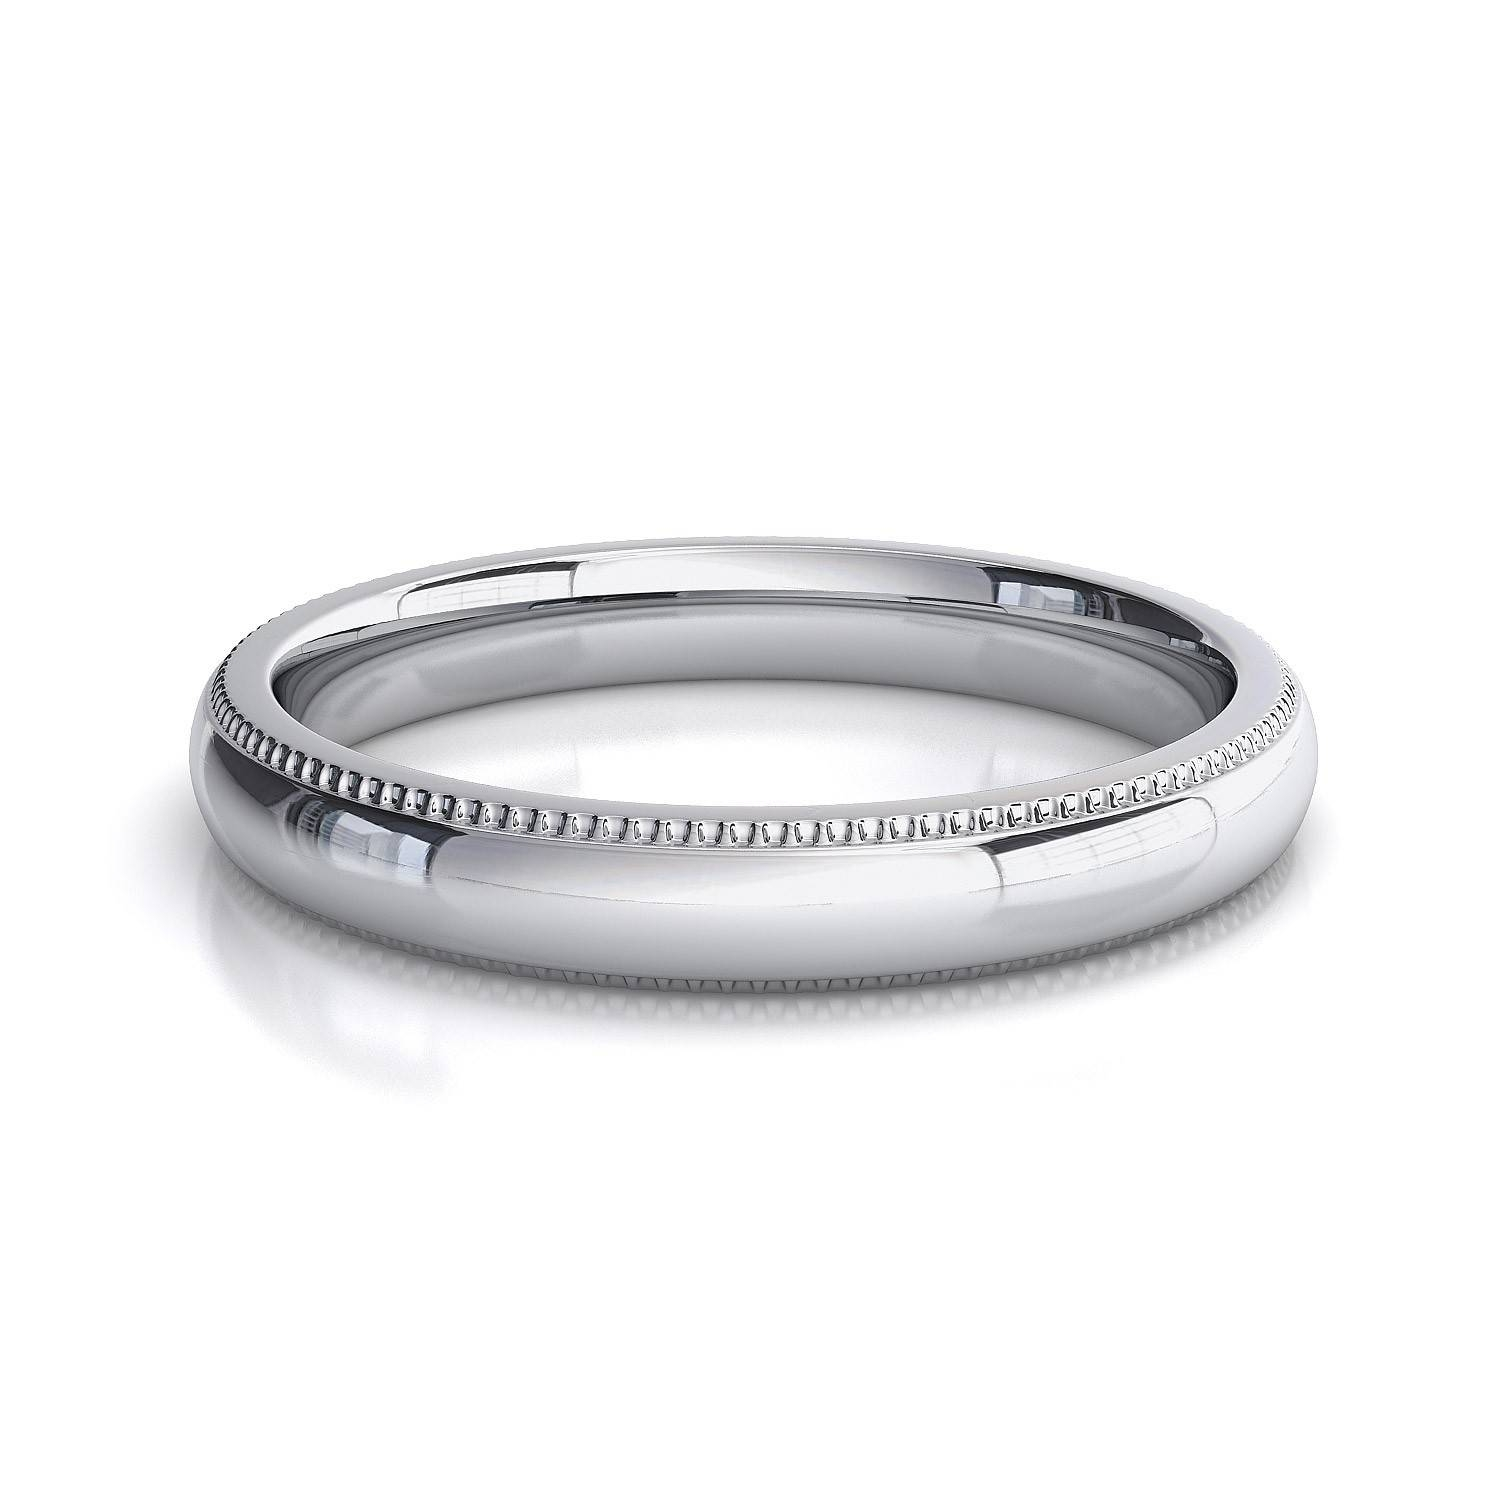 3 Mm Comfort Fit Milgrain Women's Plain Wedding Band In 14K White Gold With Regard To Millgrain Wedding Bands (View 3 of 15)